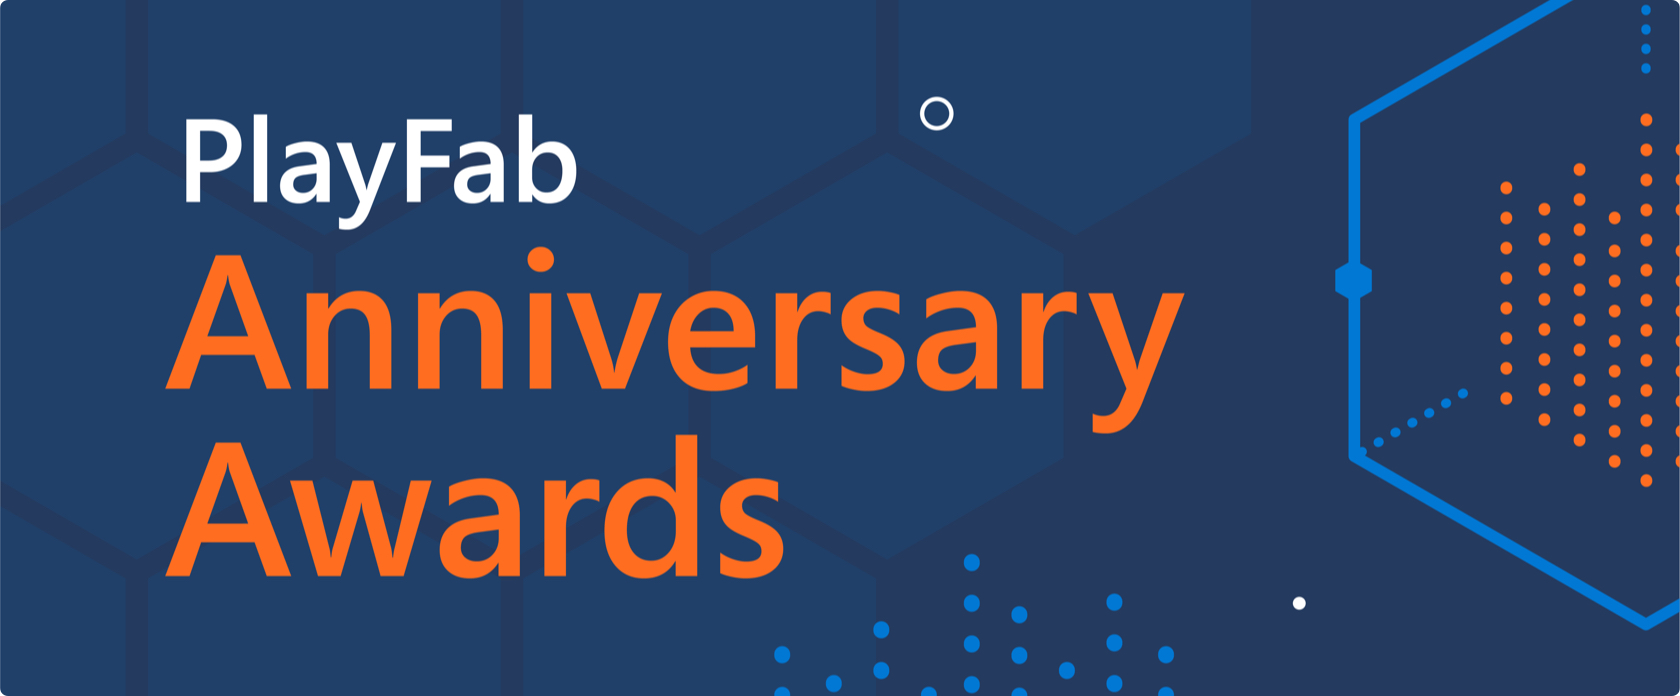 PlayFab anniversary awards banner